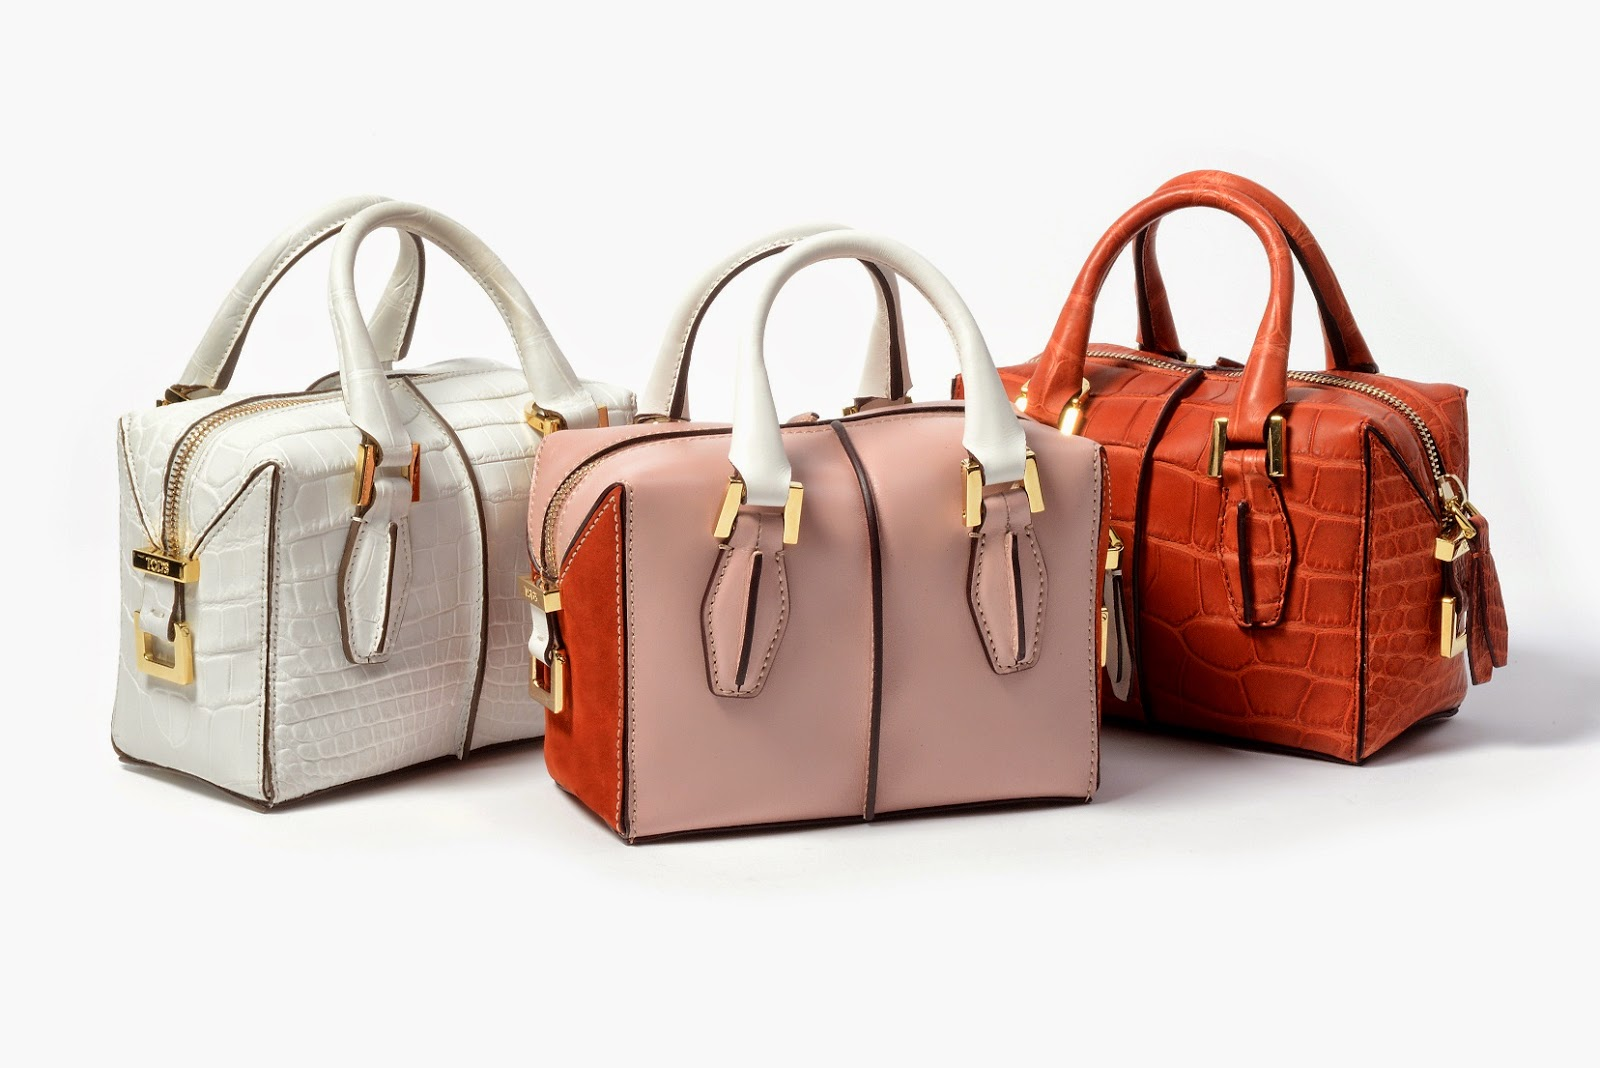 D-cube Tods bag collection recommendations to wear in spring in 2019